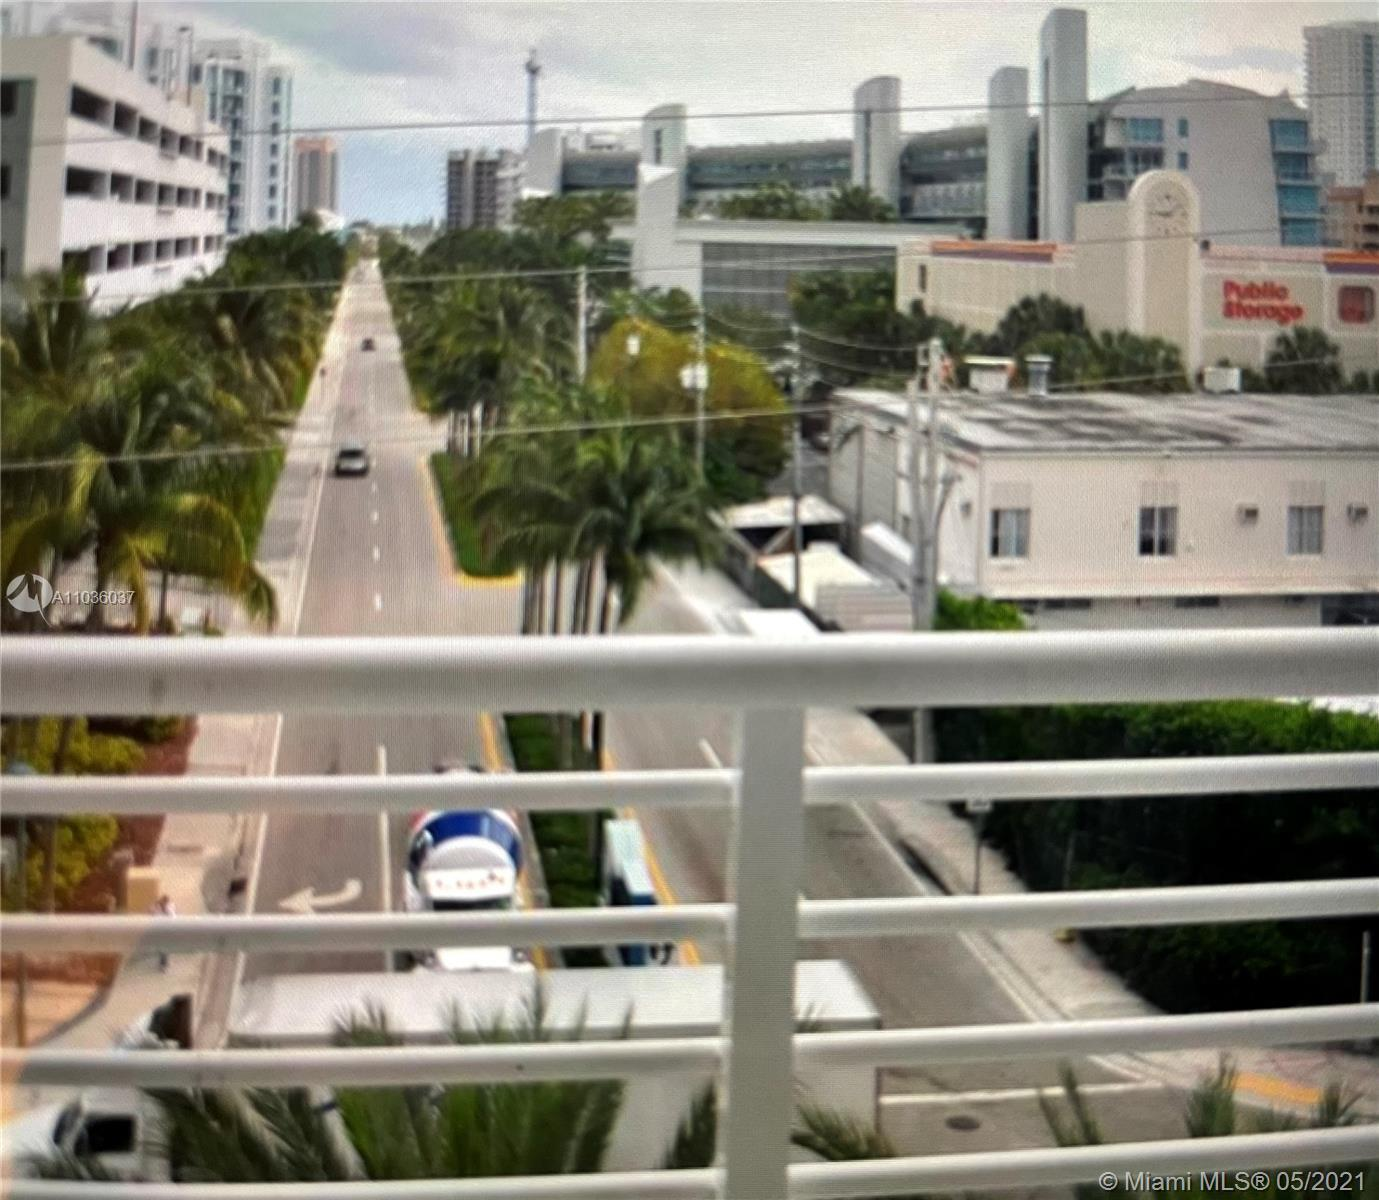 Great 1 BED/ 1 BATH unit in the heart of Aventura. Freshly painted, unit in great condition with fan